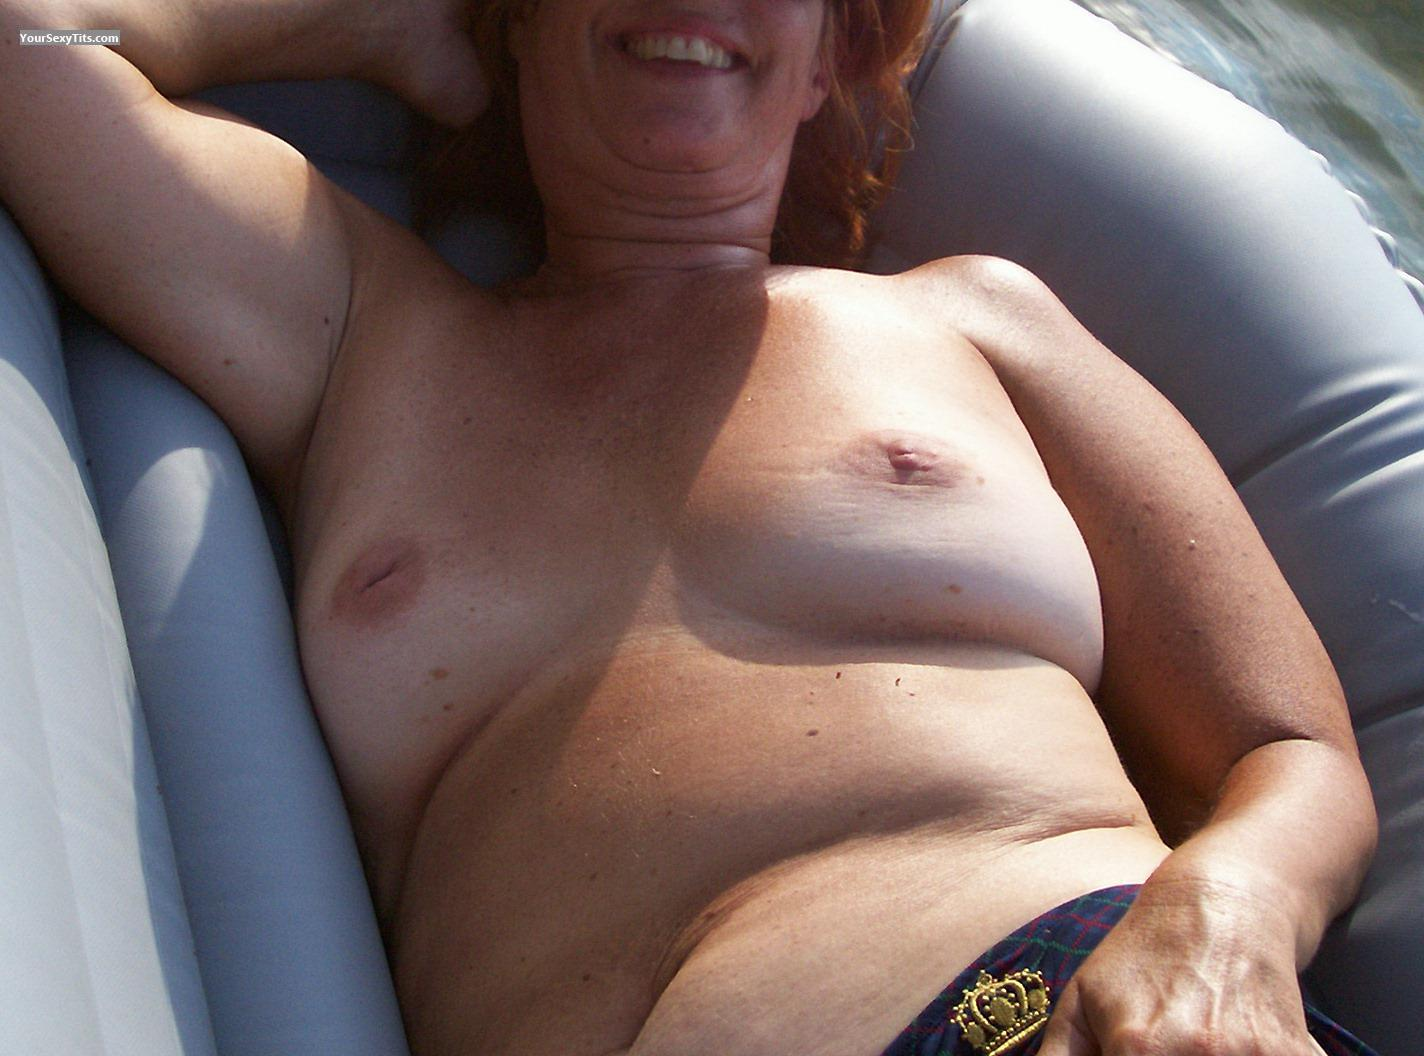 Tit Flash: Medium Tits - Sandy from United States